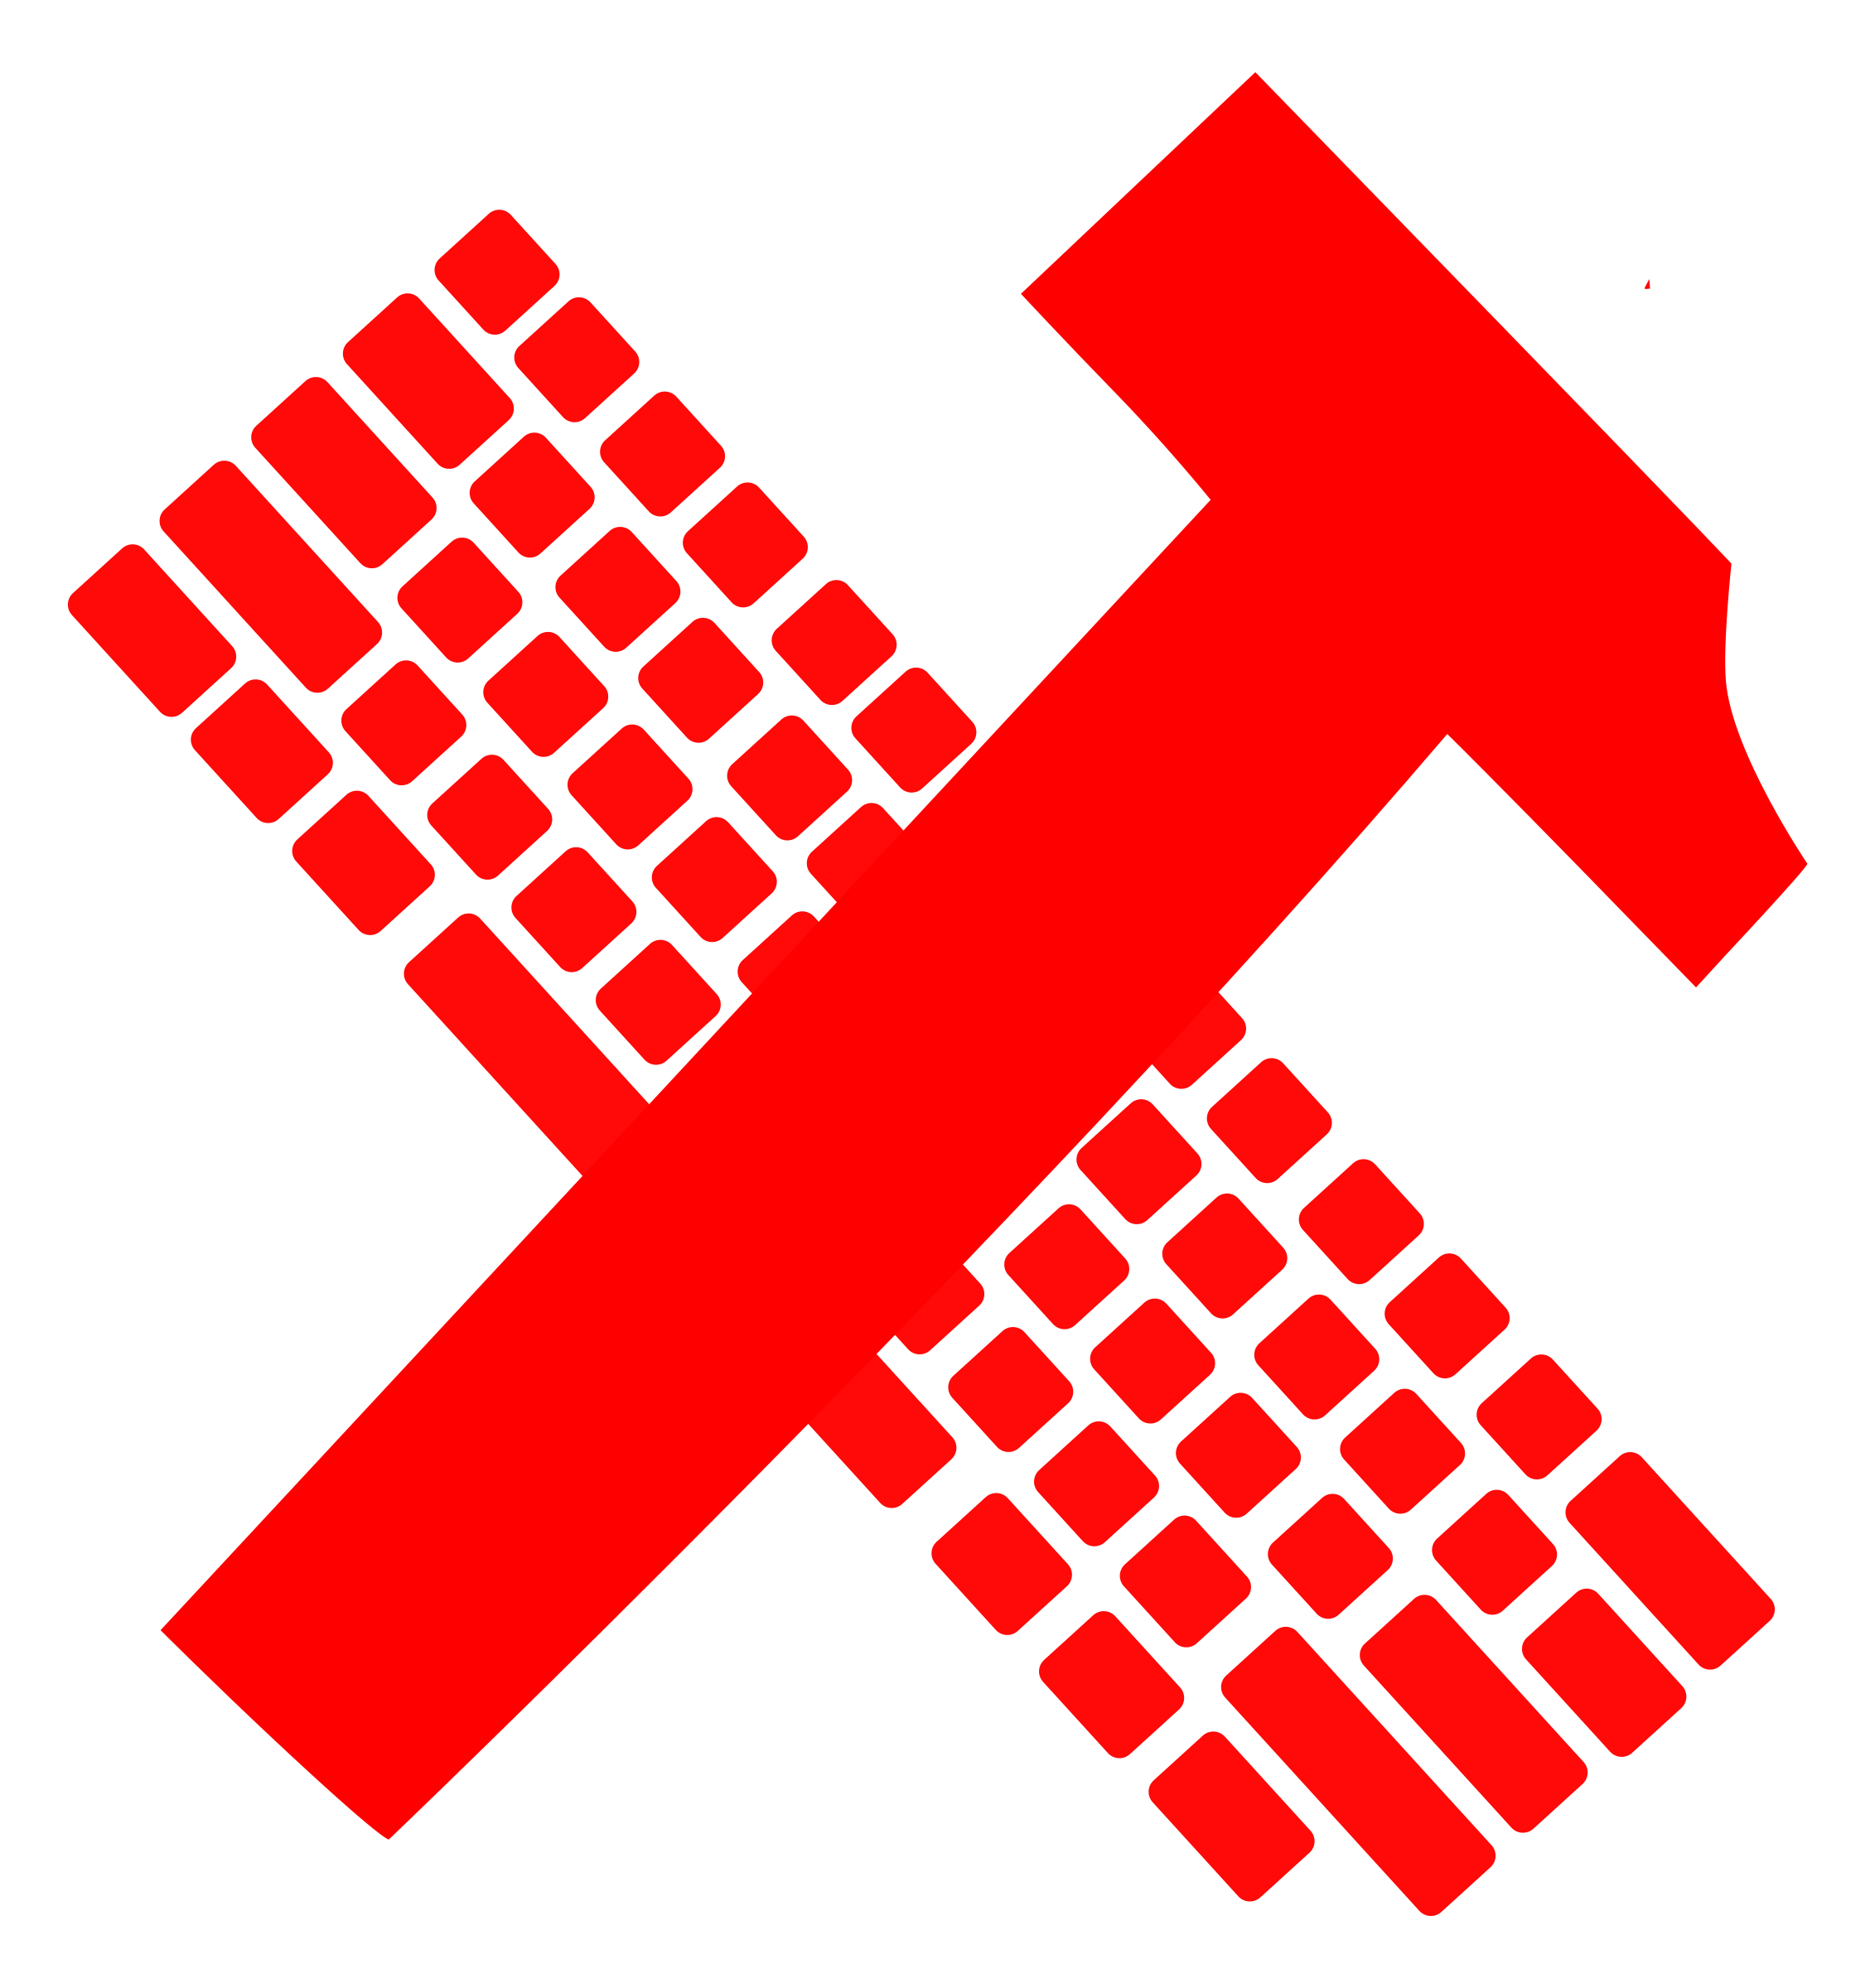 hammer and keyboard - proletariat by worker